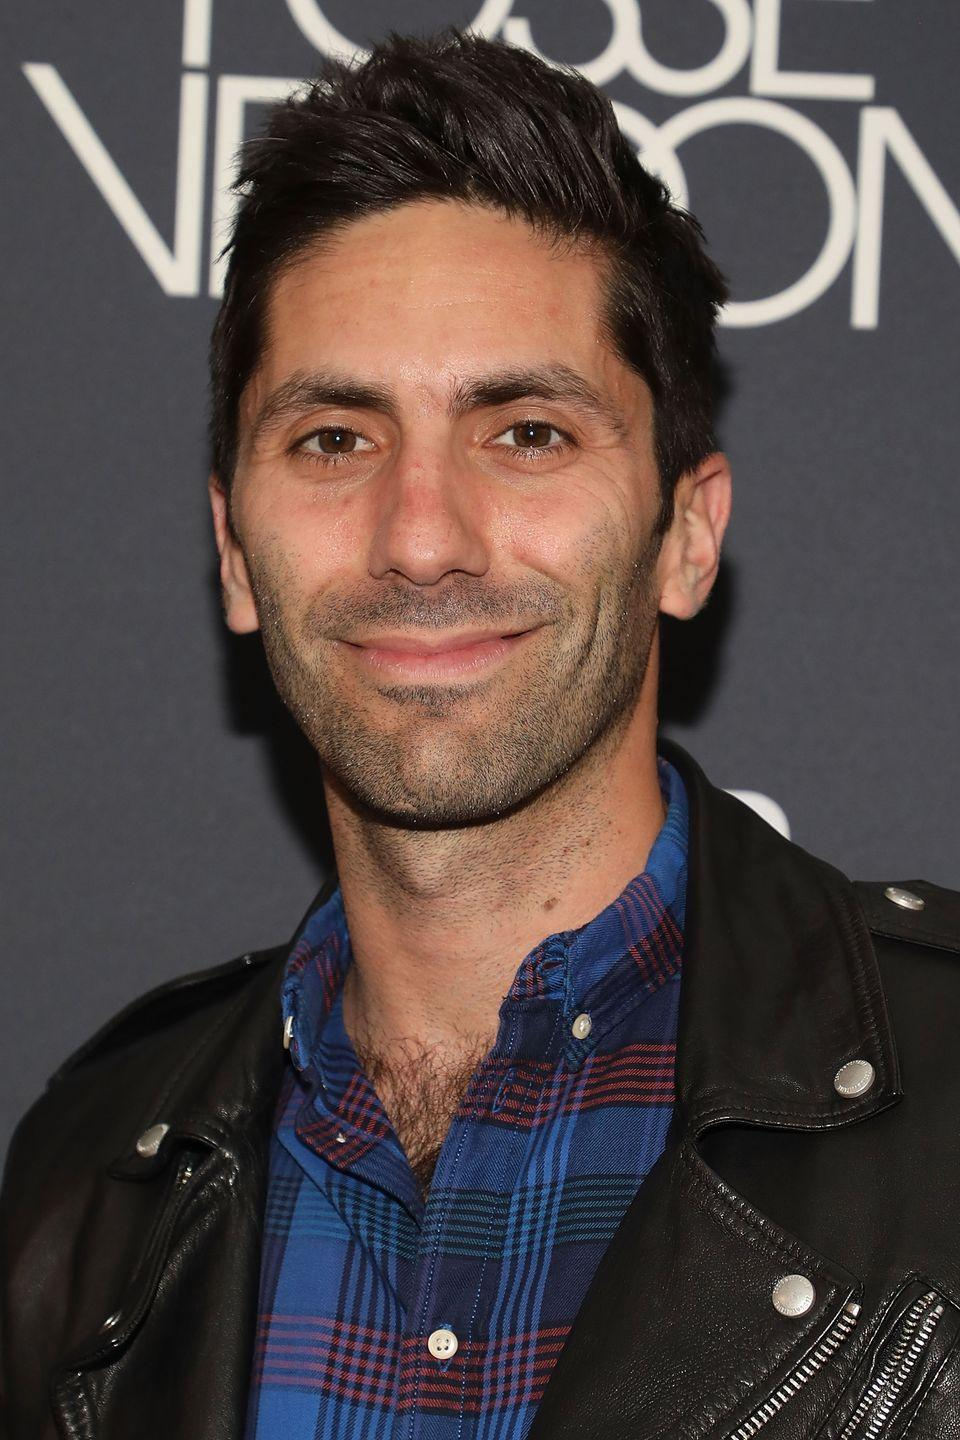 <p>MTV's Nev Schulman keeps it professional for most appearances, but it's nearly impossible for him to hide his impressive chest hair. </p>